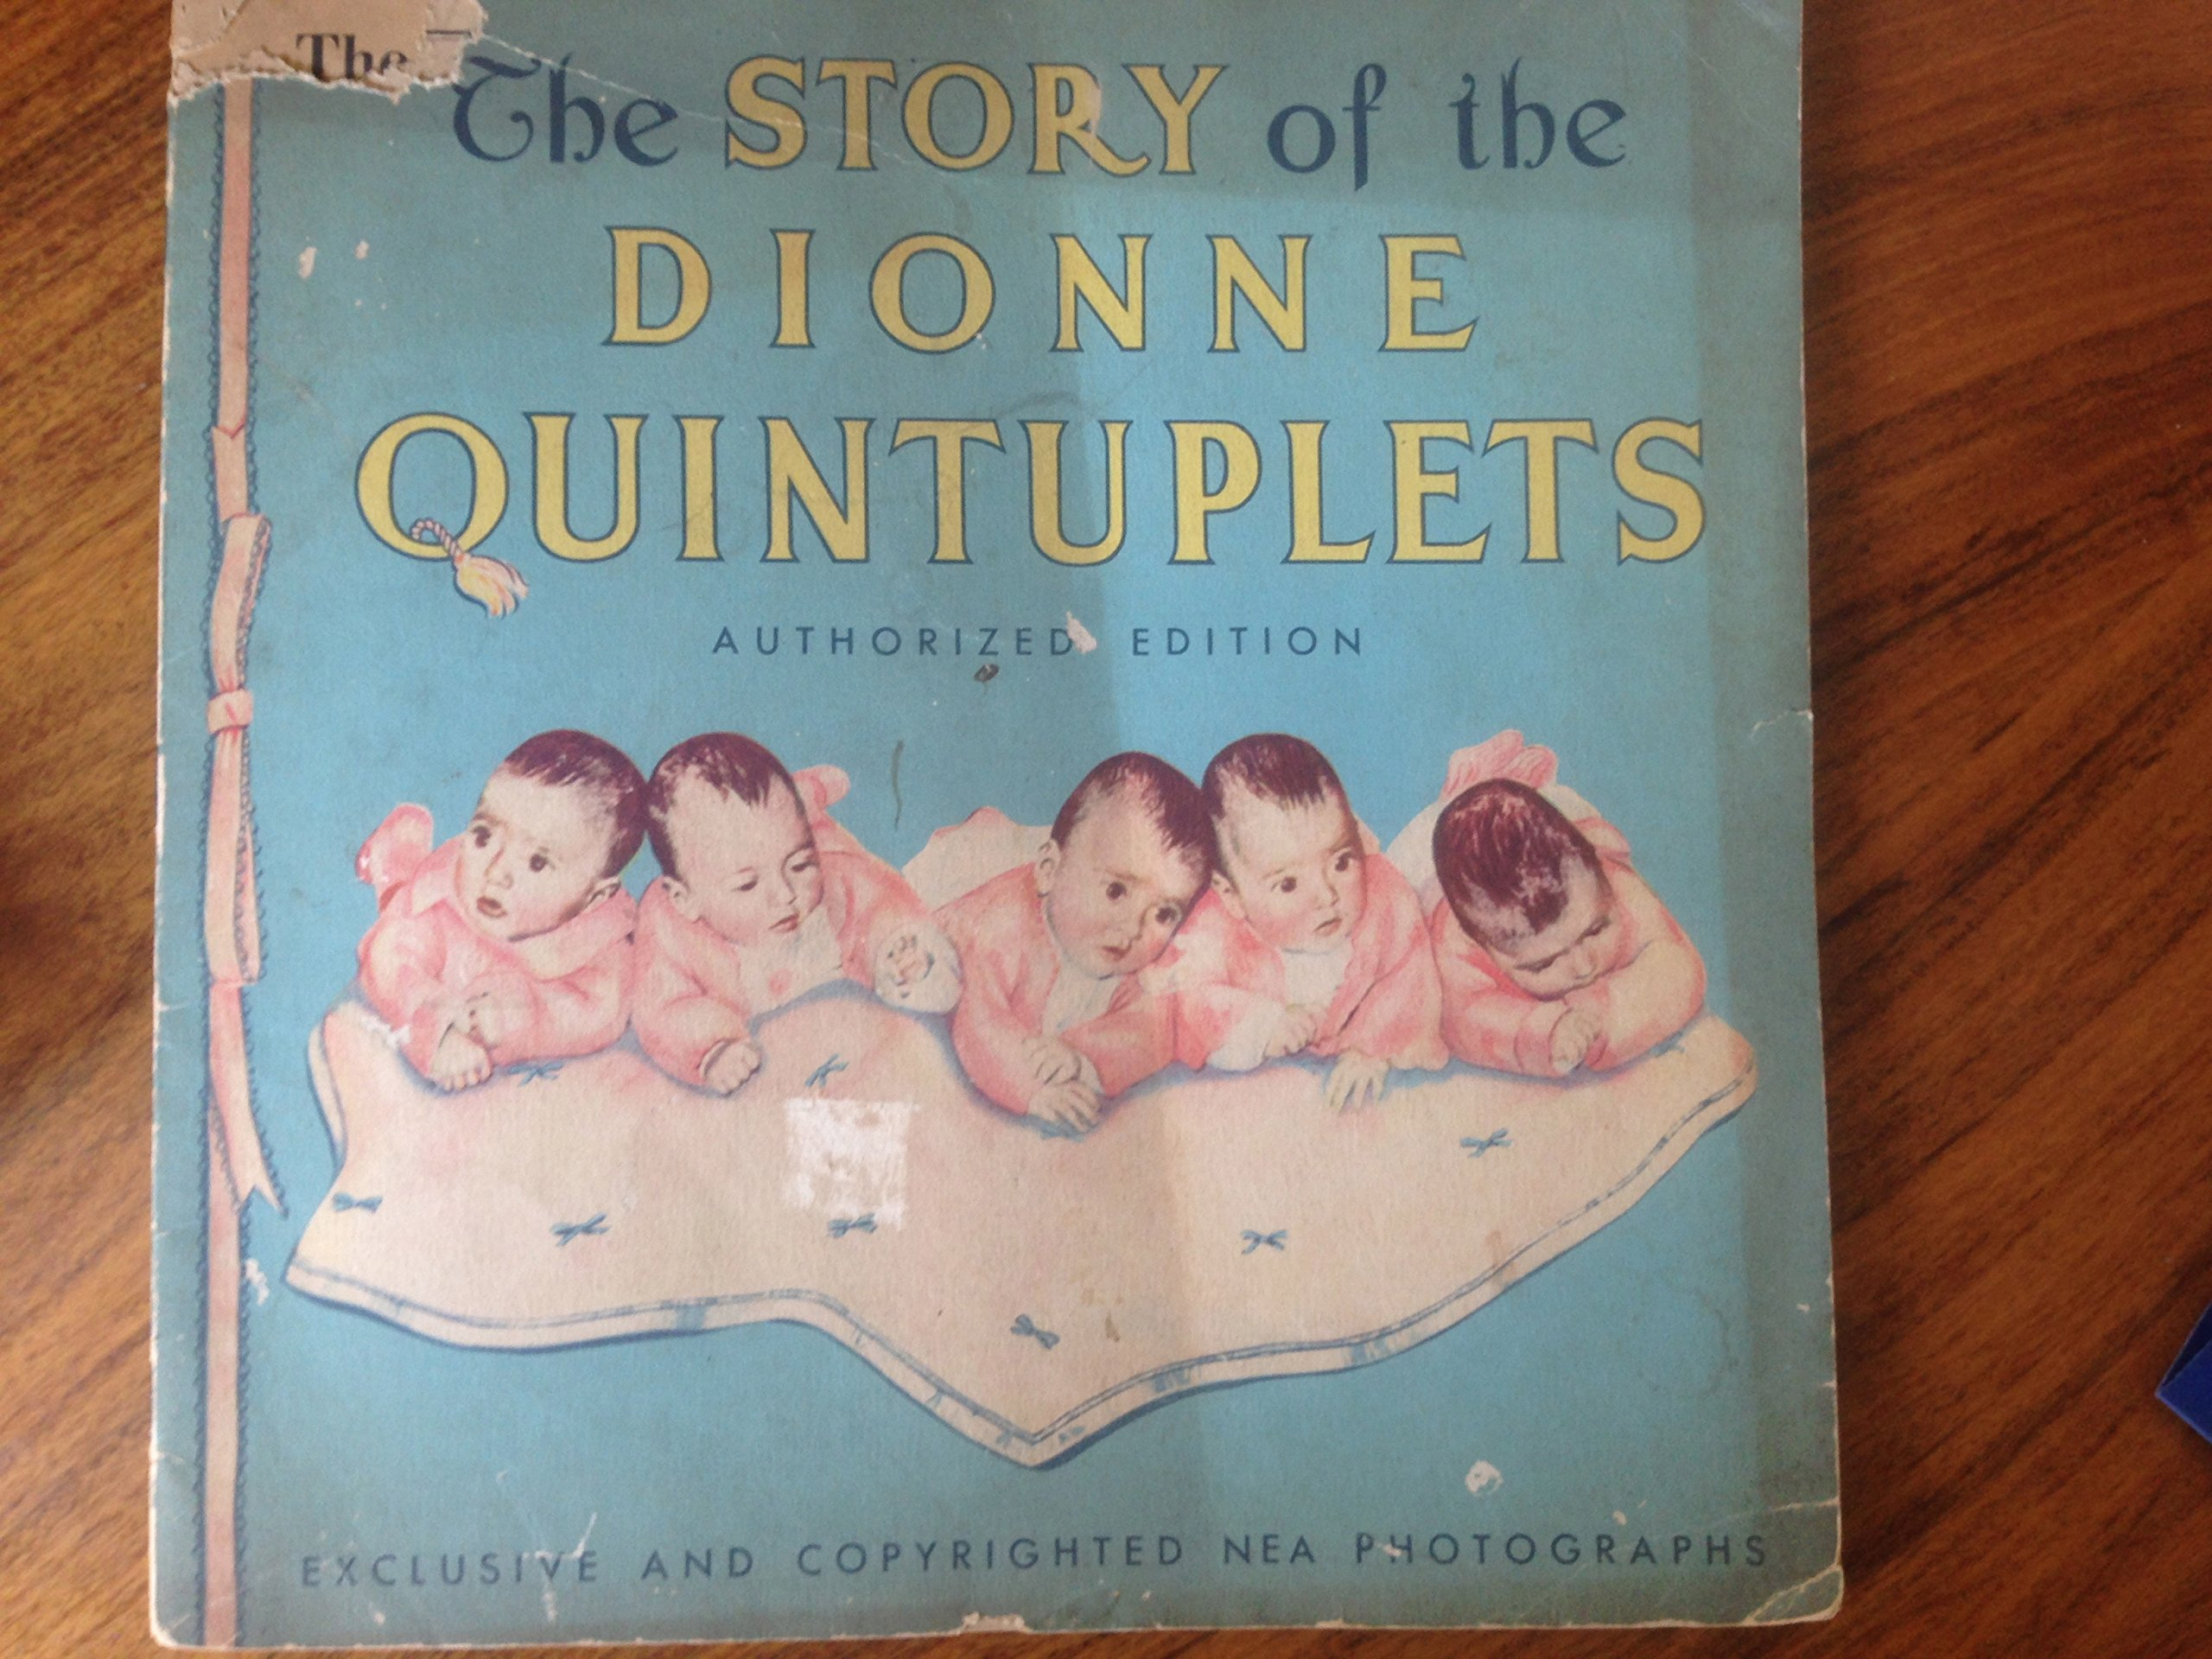 The Pictorial Story of the Dionne Quintuplets Authorized Edition (The Five Little Dionnes and How They Grew: Exclusive and Copyrighted NEA Photographs)